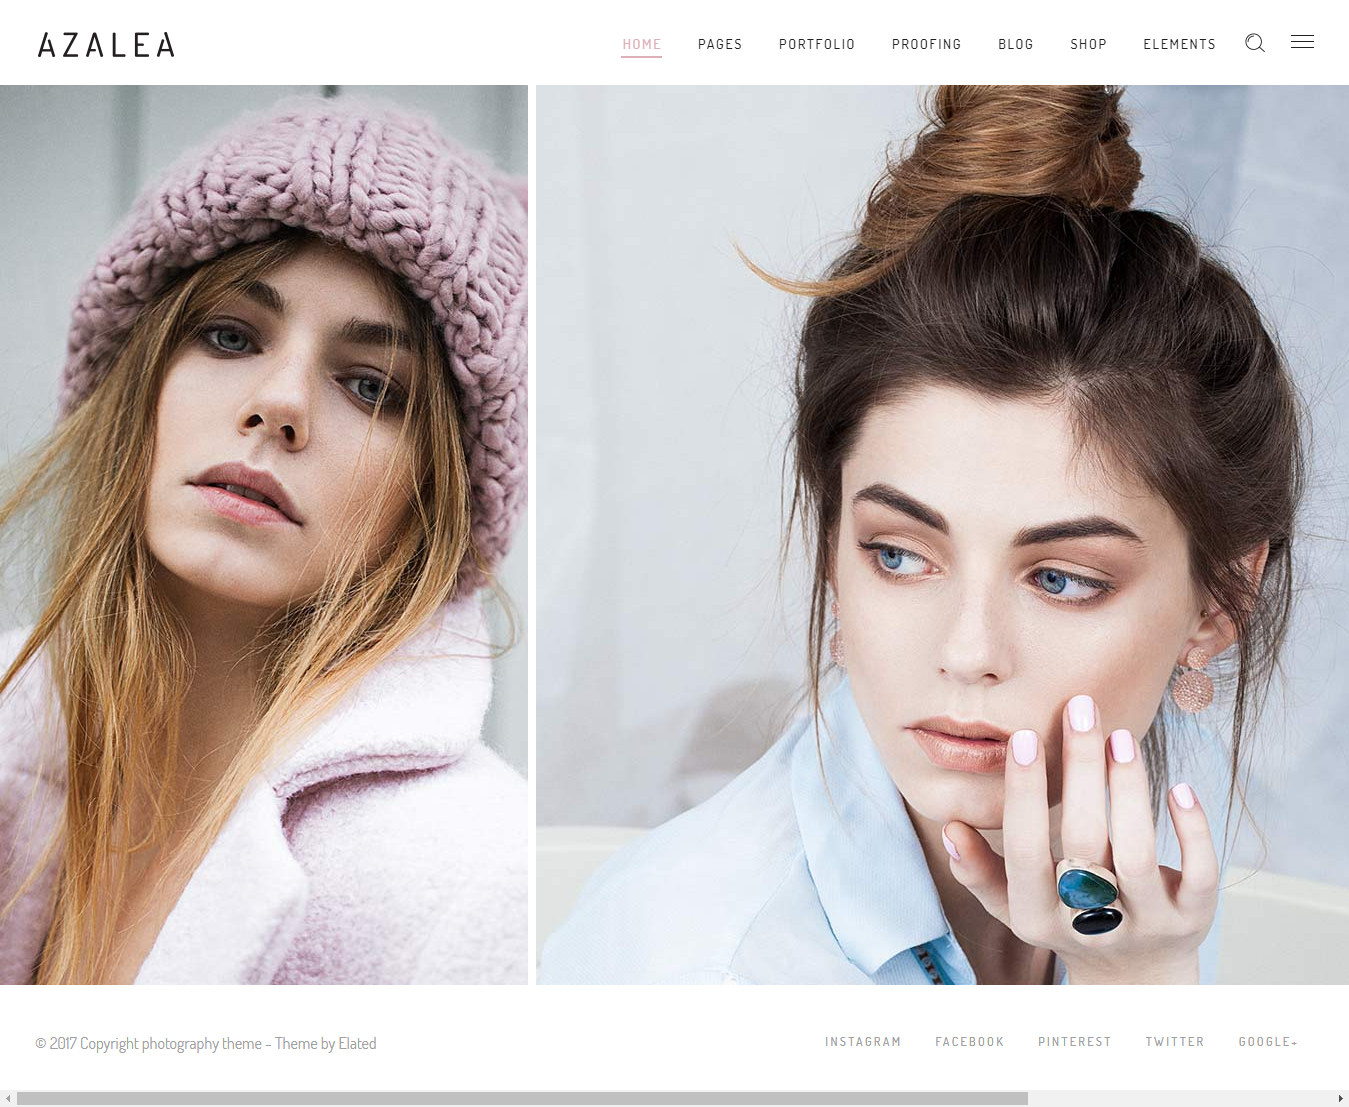 azalea best premium fashion wordpress theme - 10+ Best Premium Fashion WordPress Themes